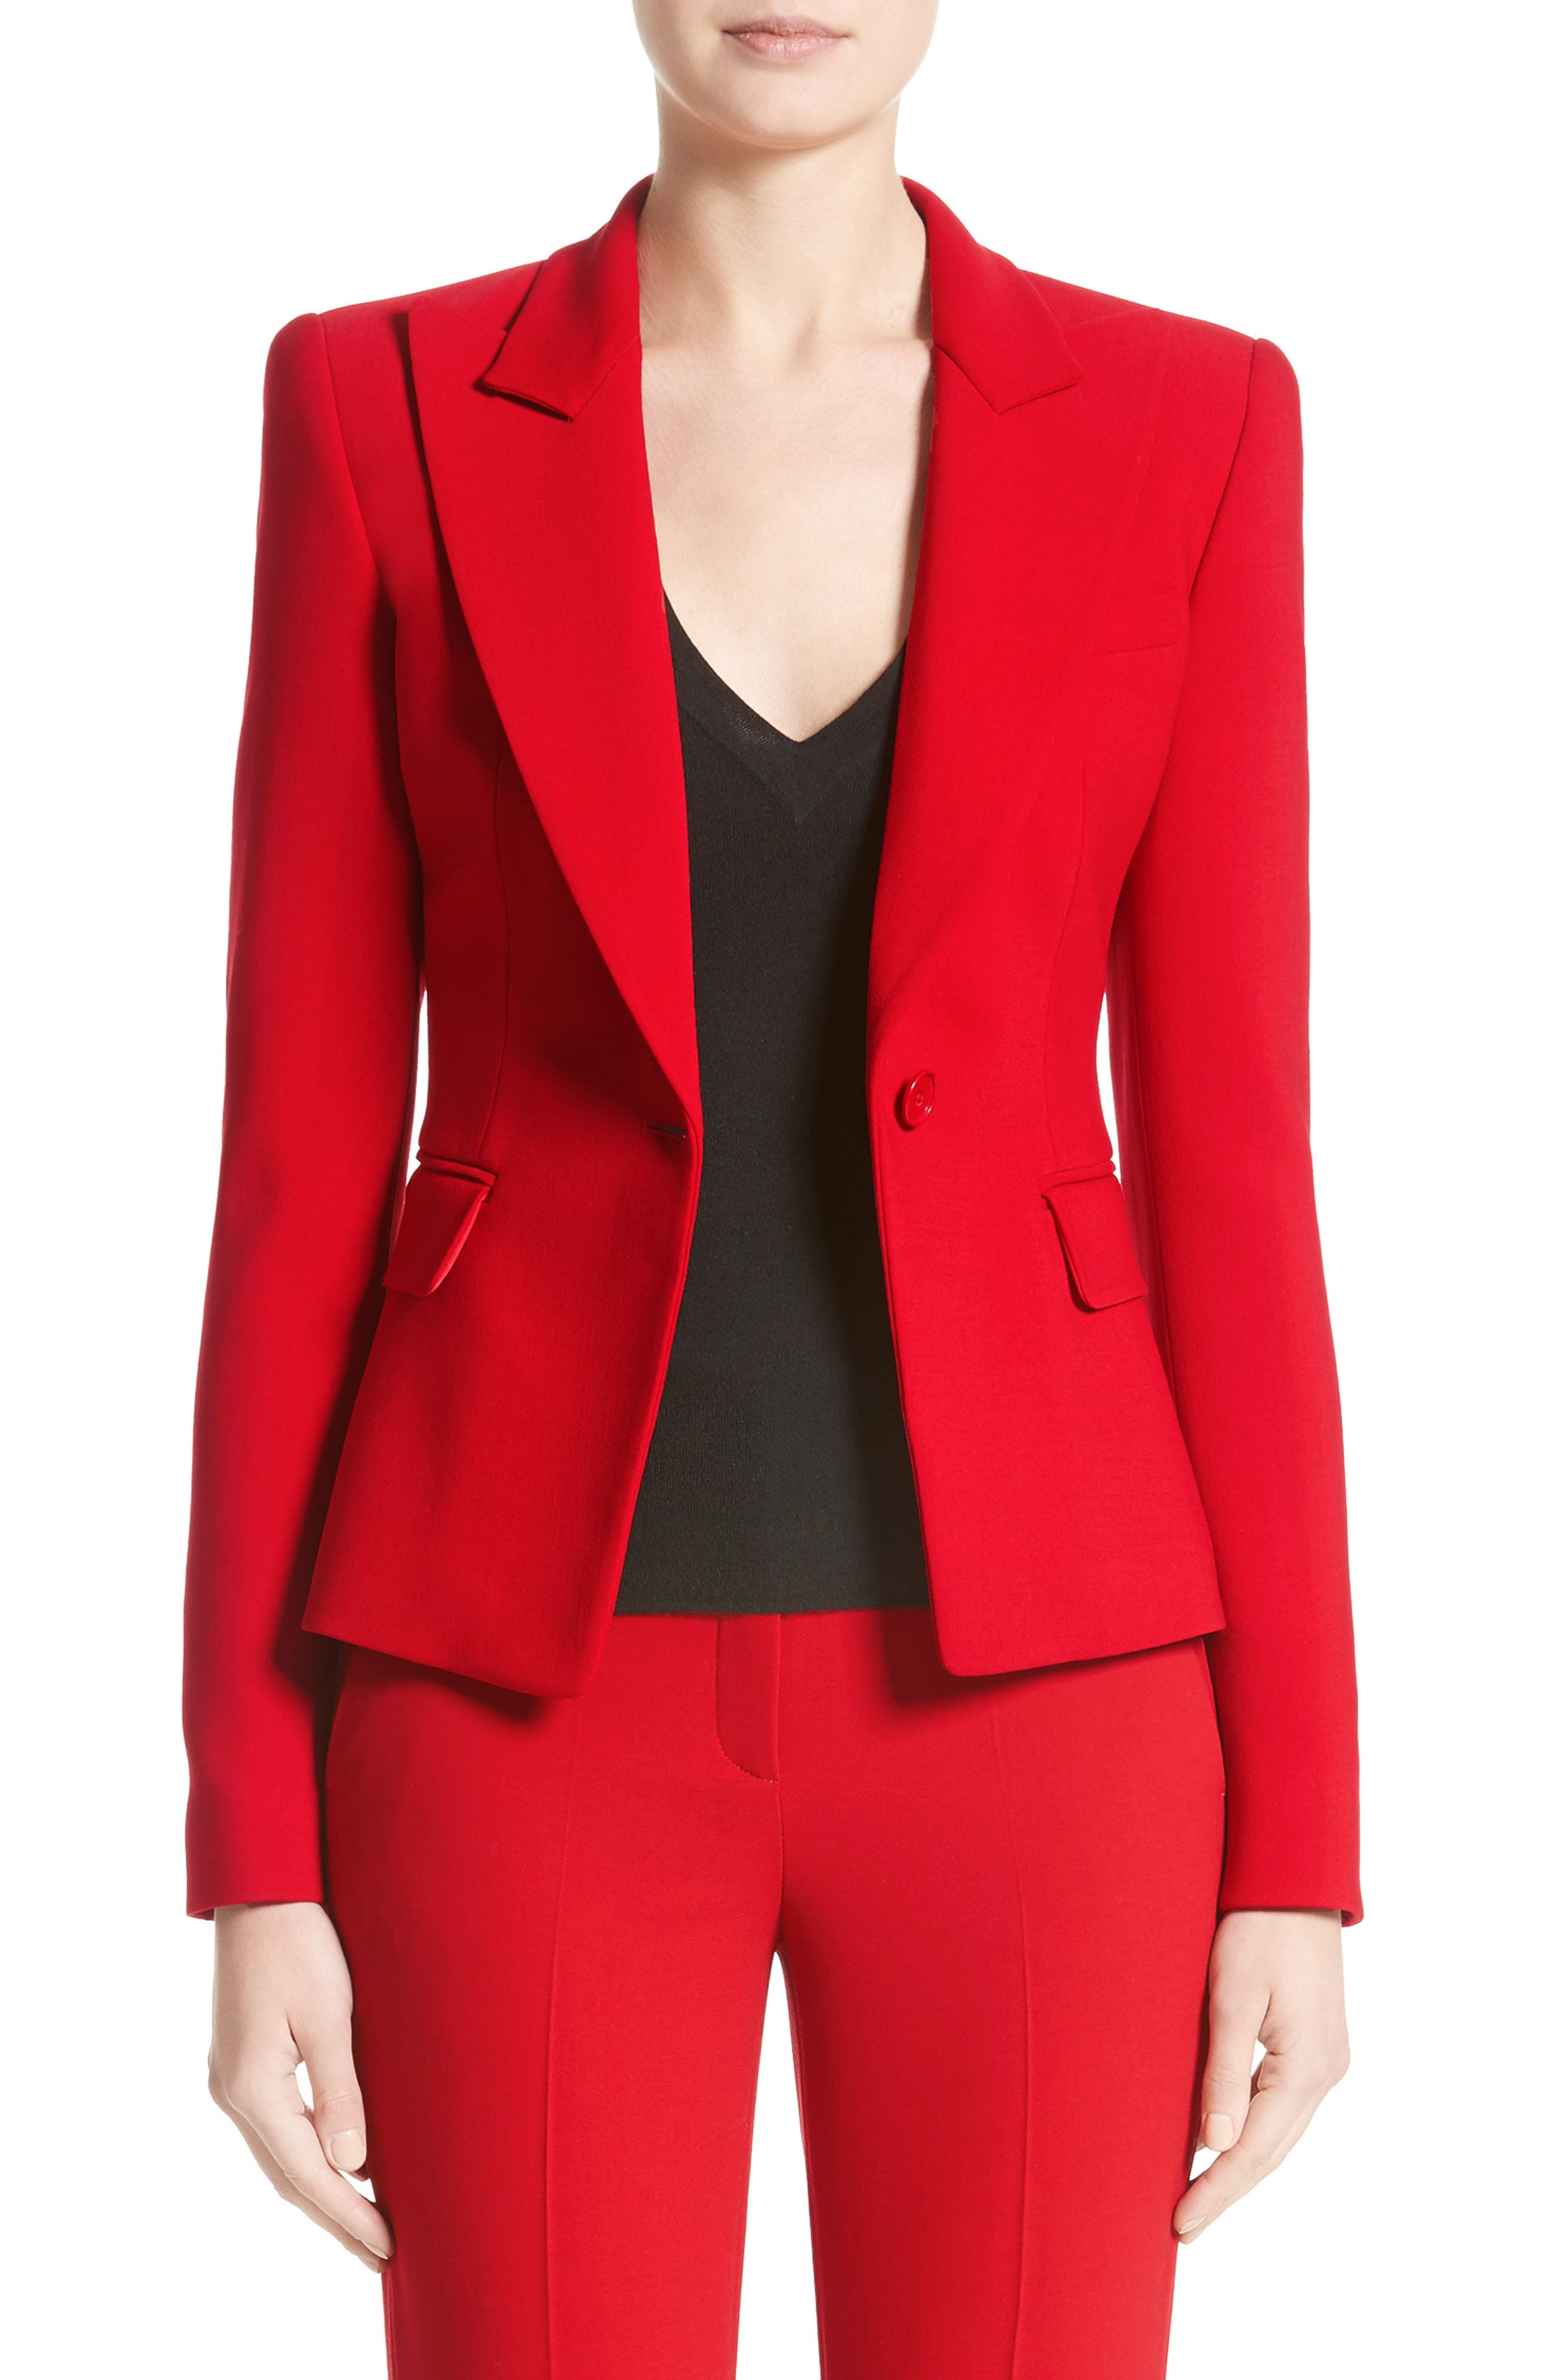 Michael Kors Stretch Pebble Crepe Blazer